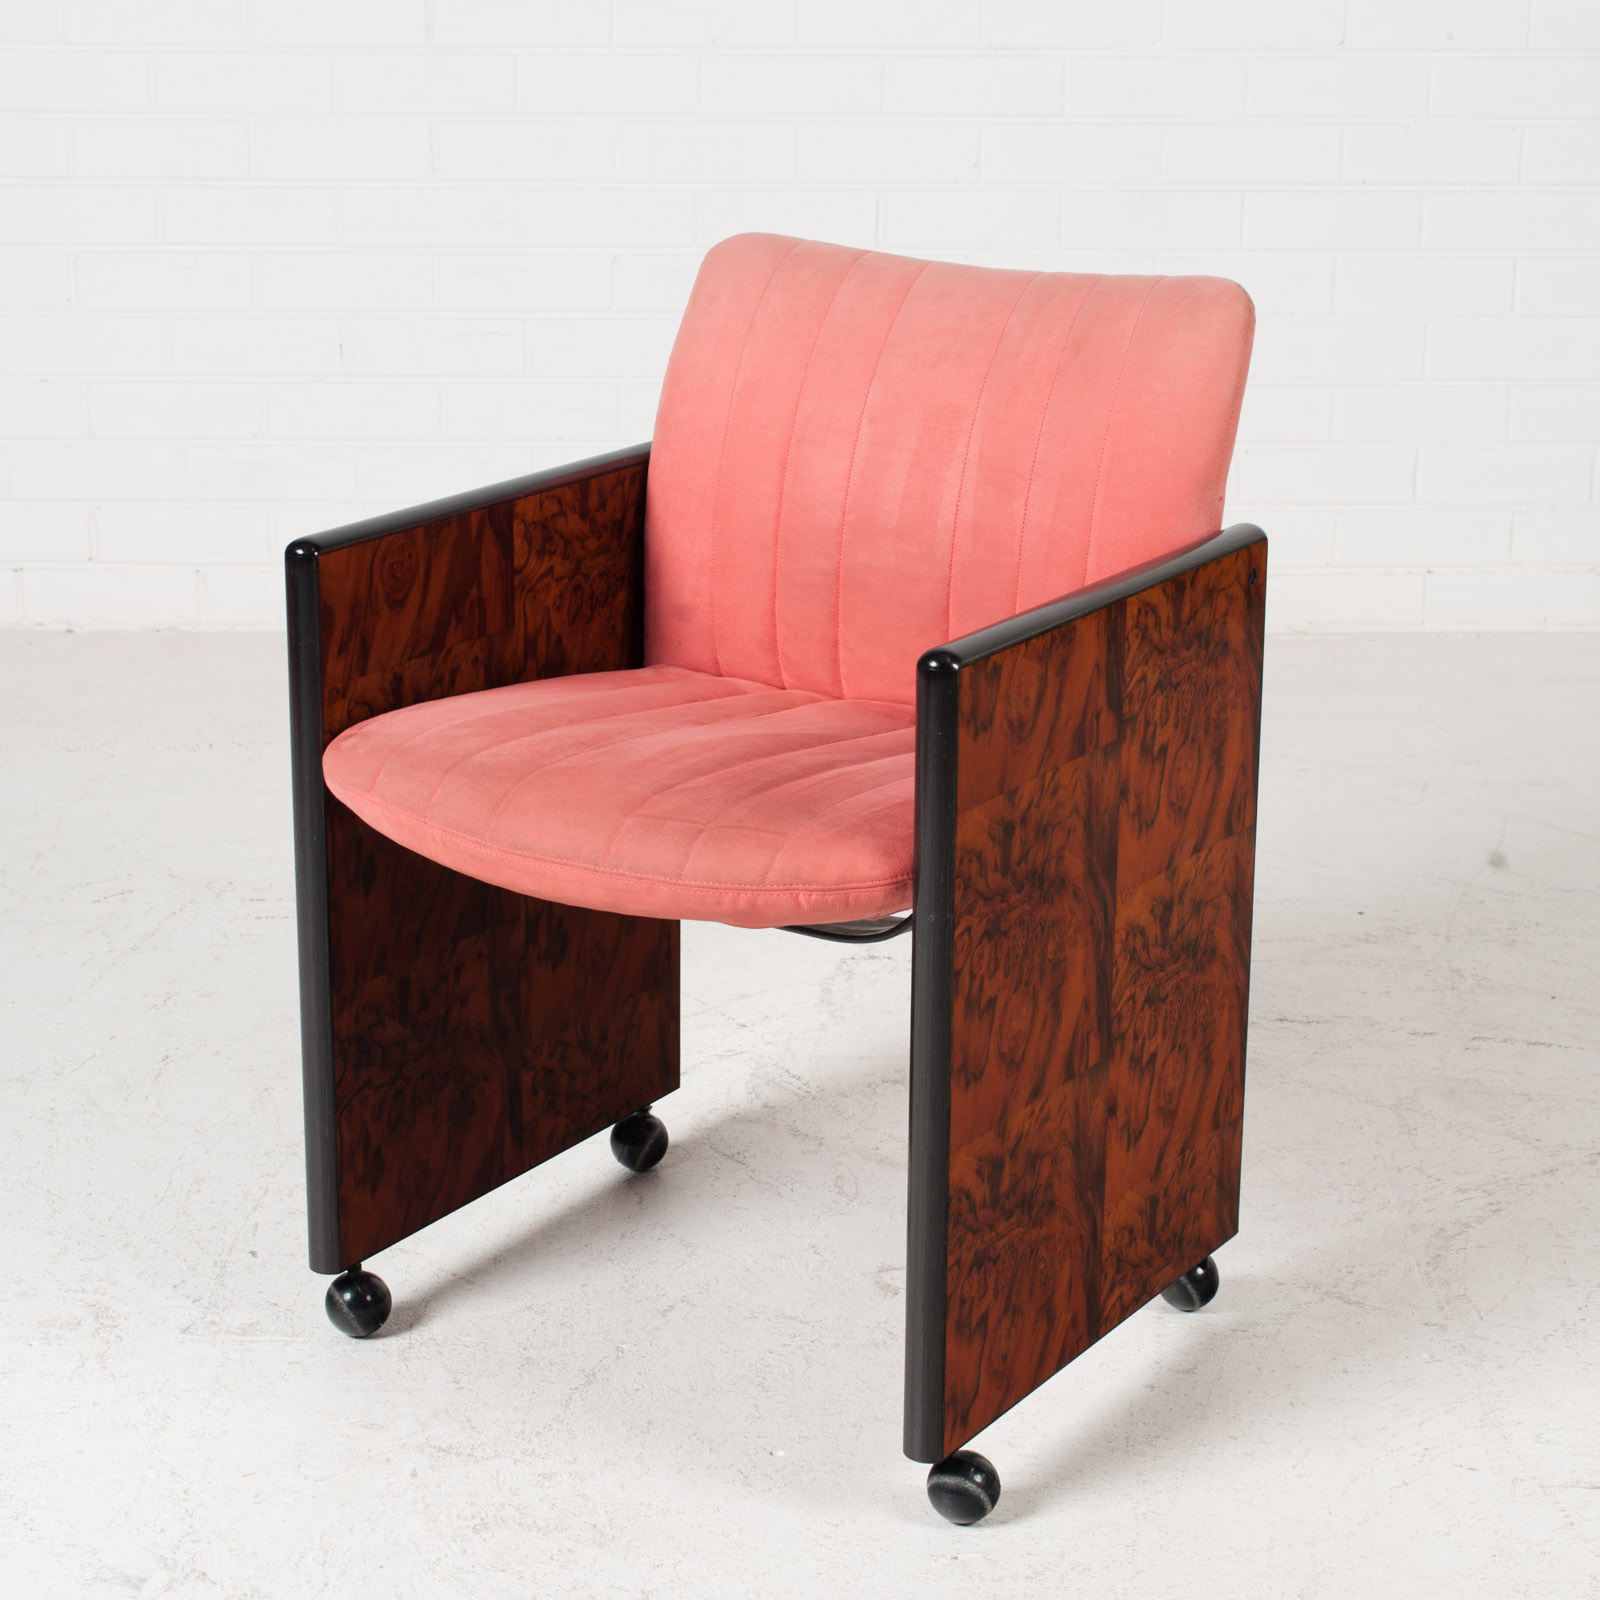 Set Of 8 Chairs By Kazuhide Takahama In Pink Upholstery 1950s Italy 01